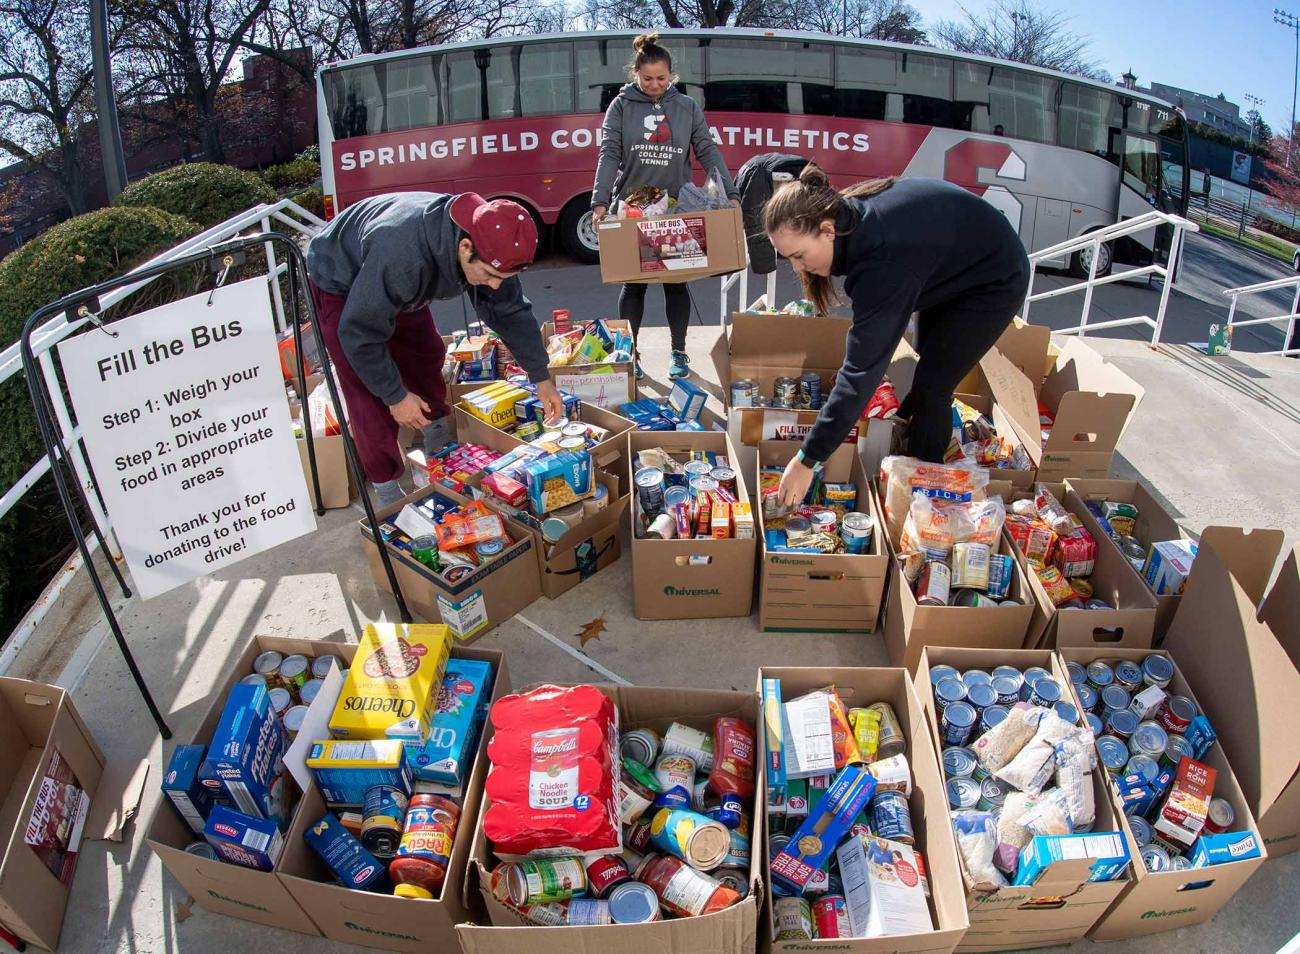 The Springfield College campus community filled the Springfield College Athletics bus on Thursday, Nov. 20, with more than 2,900 pounds of non-perishable food items as part of the annual Fill the Bus campaign, sponsored by the Springfield College Student Athlete Leadership Team (S.A.L.T.), the Department of Public Safety, and the Division of Inclusion and Community Engagement.